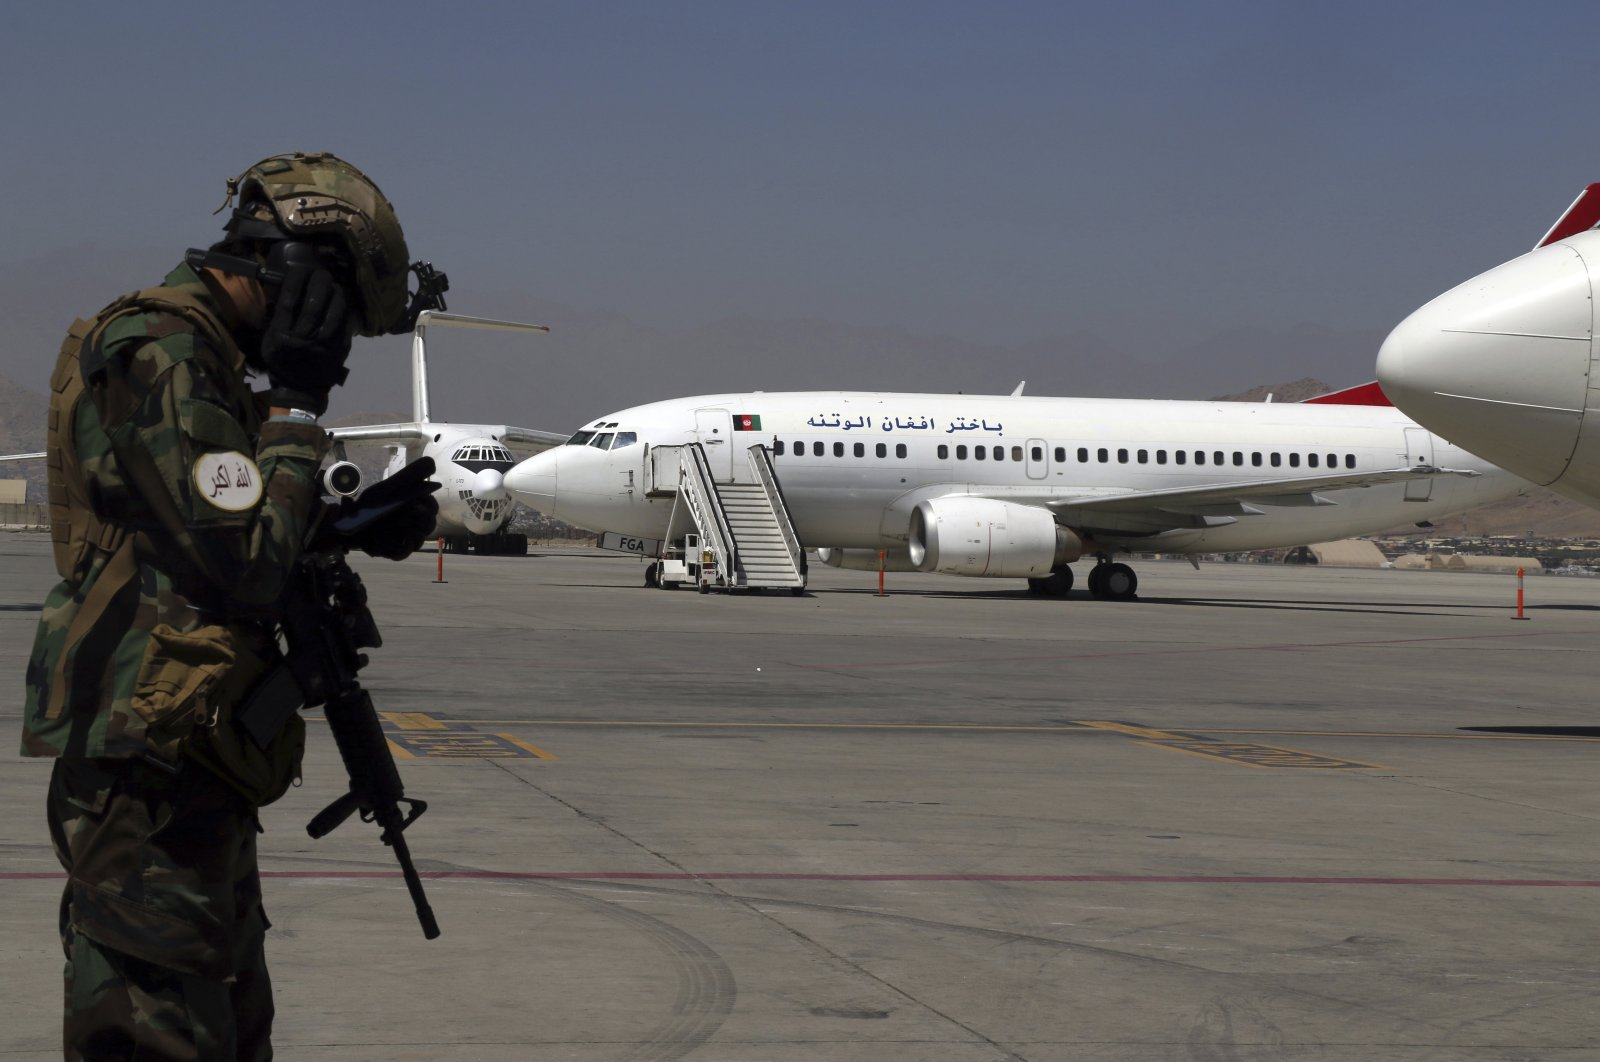 A Taliban soldier stands guard at Kabul Hamid Karzai International Airport in Kabul, Afghanistan, Sept. 5, 2021. (AP Photo)